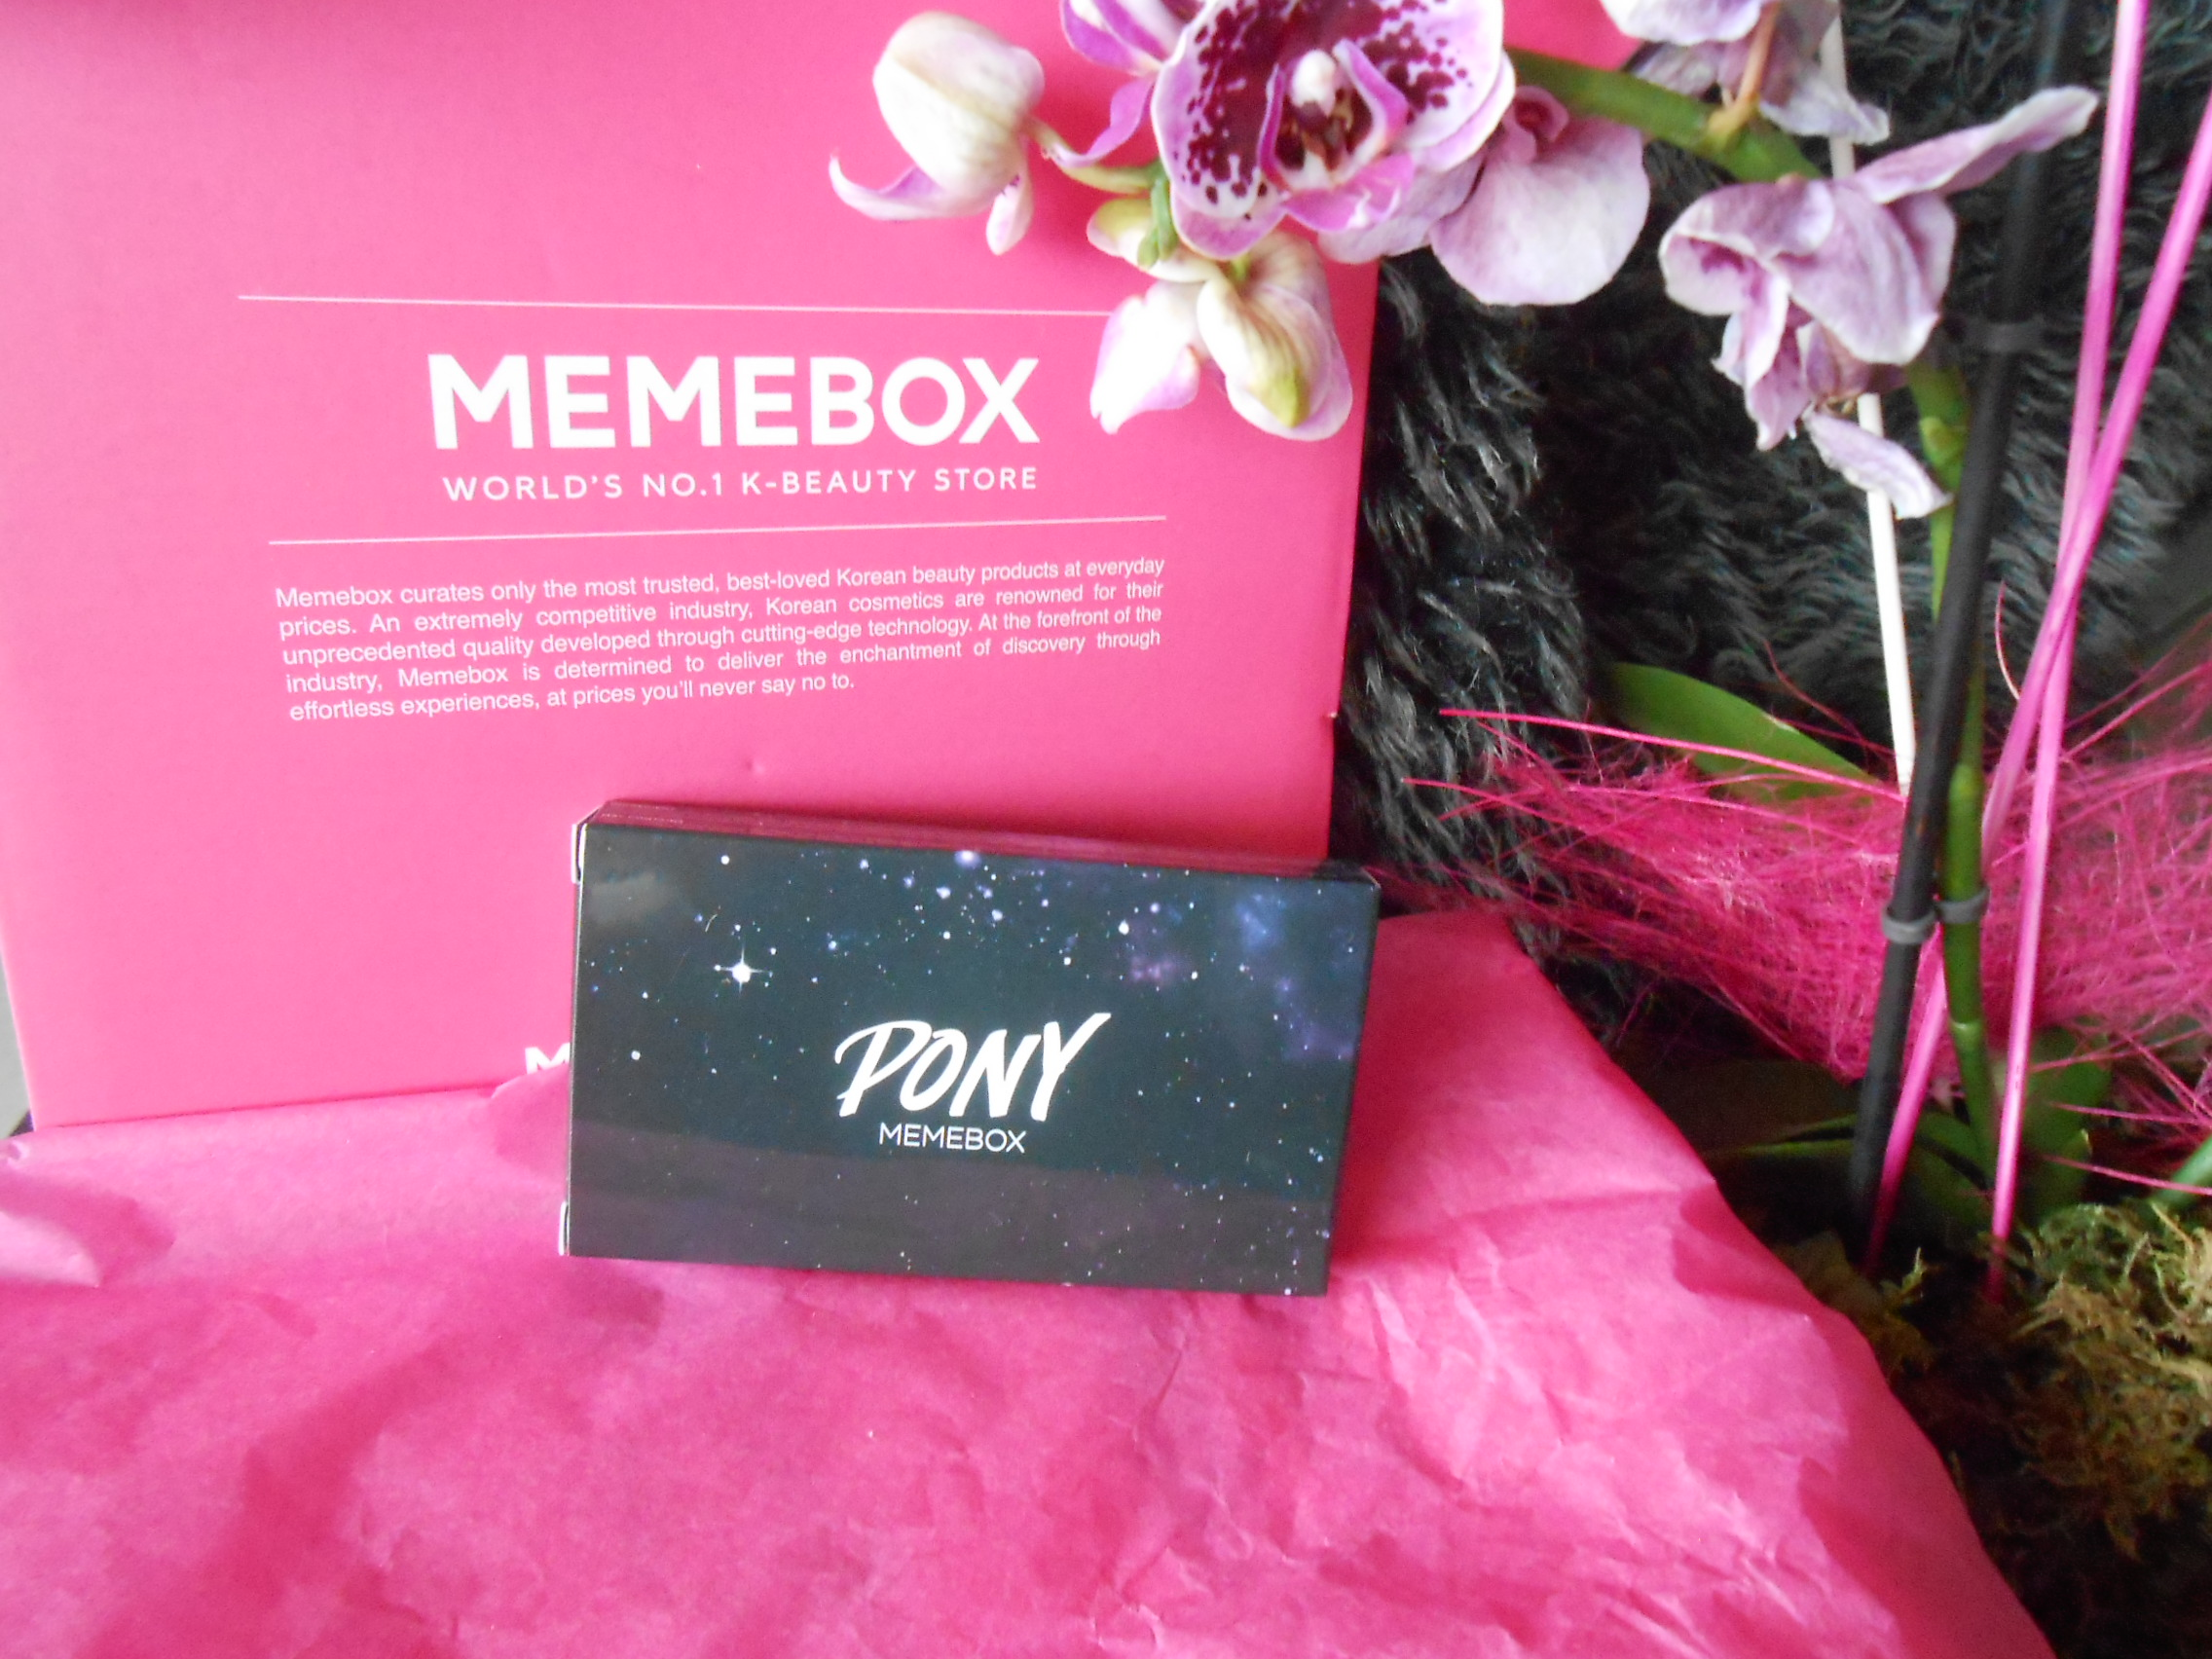 La merveilleuse box PONY x Memebox !